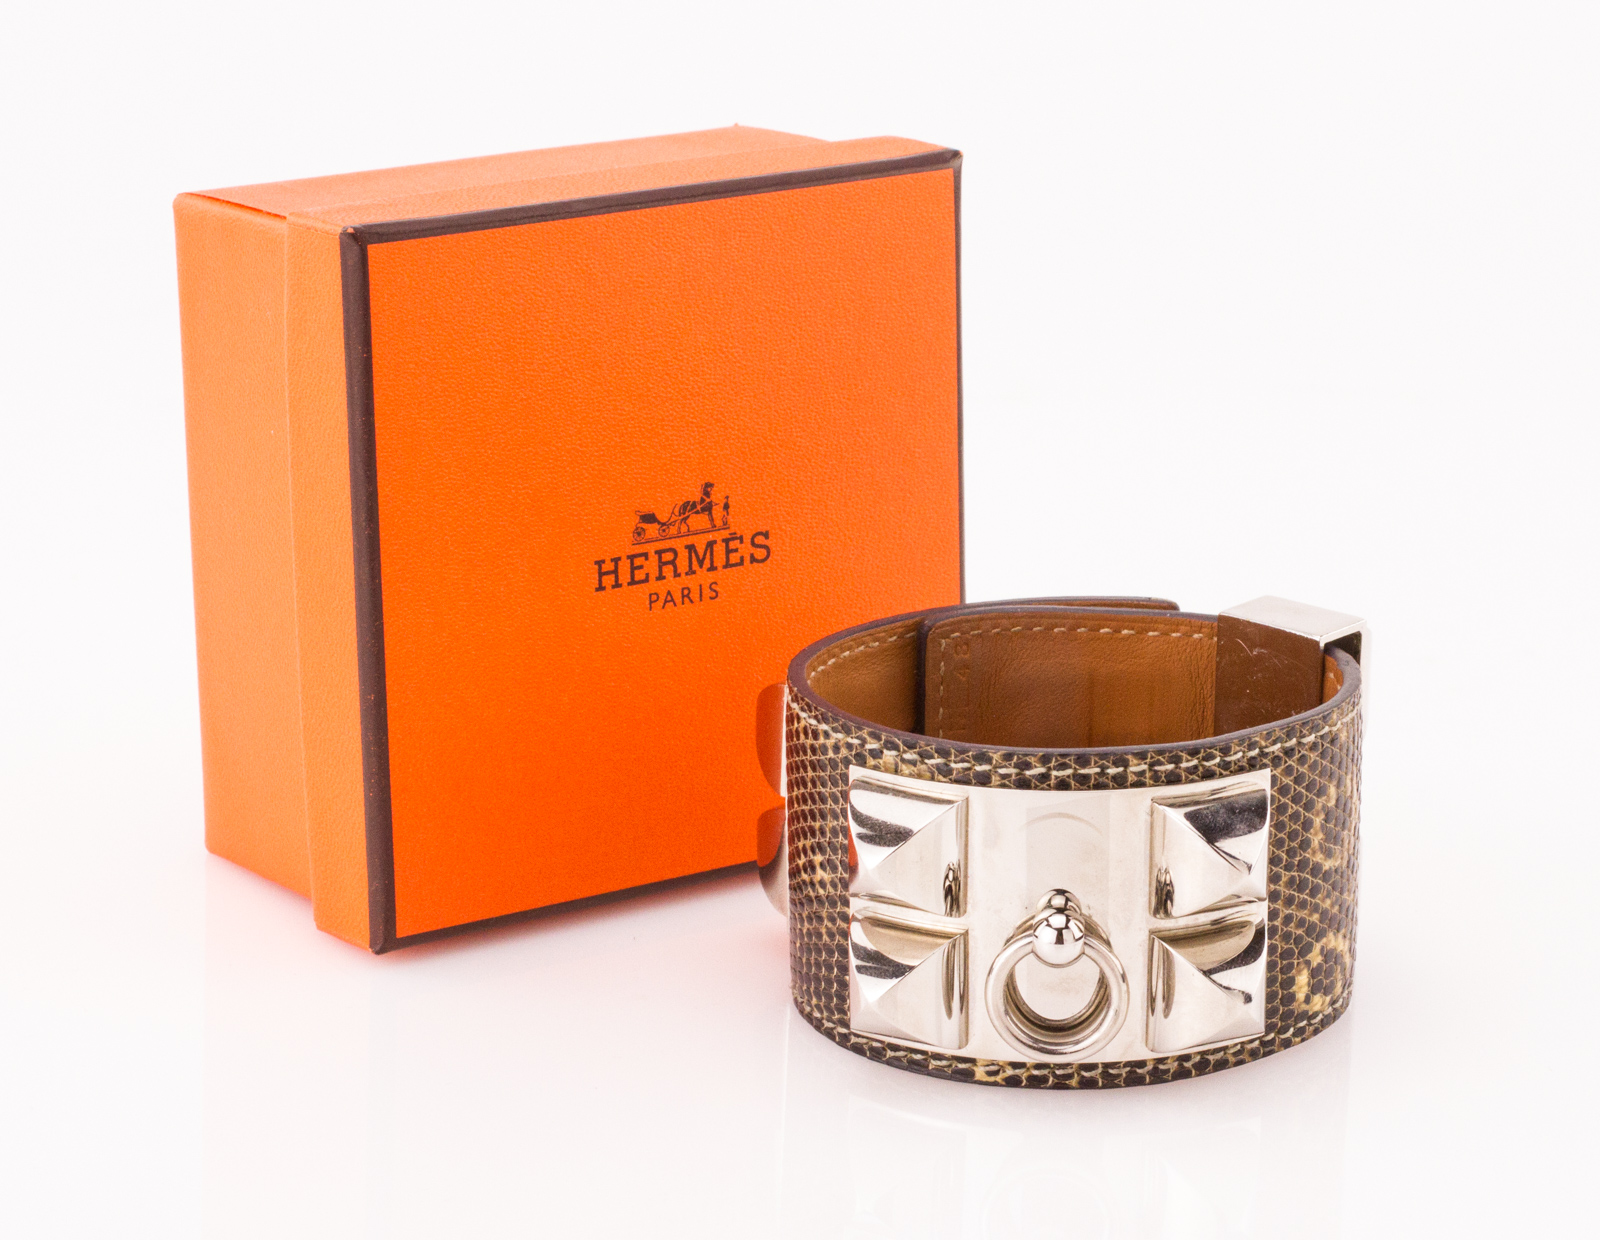 Details about HERMES Black and White Lizard Skin Palladium Collier De Chien Bracelet